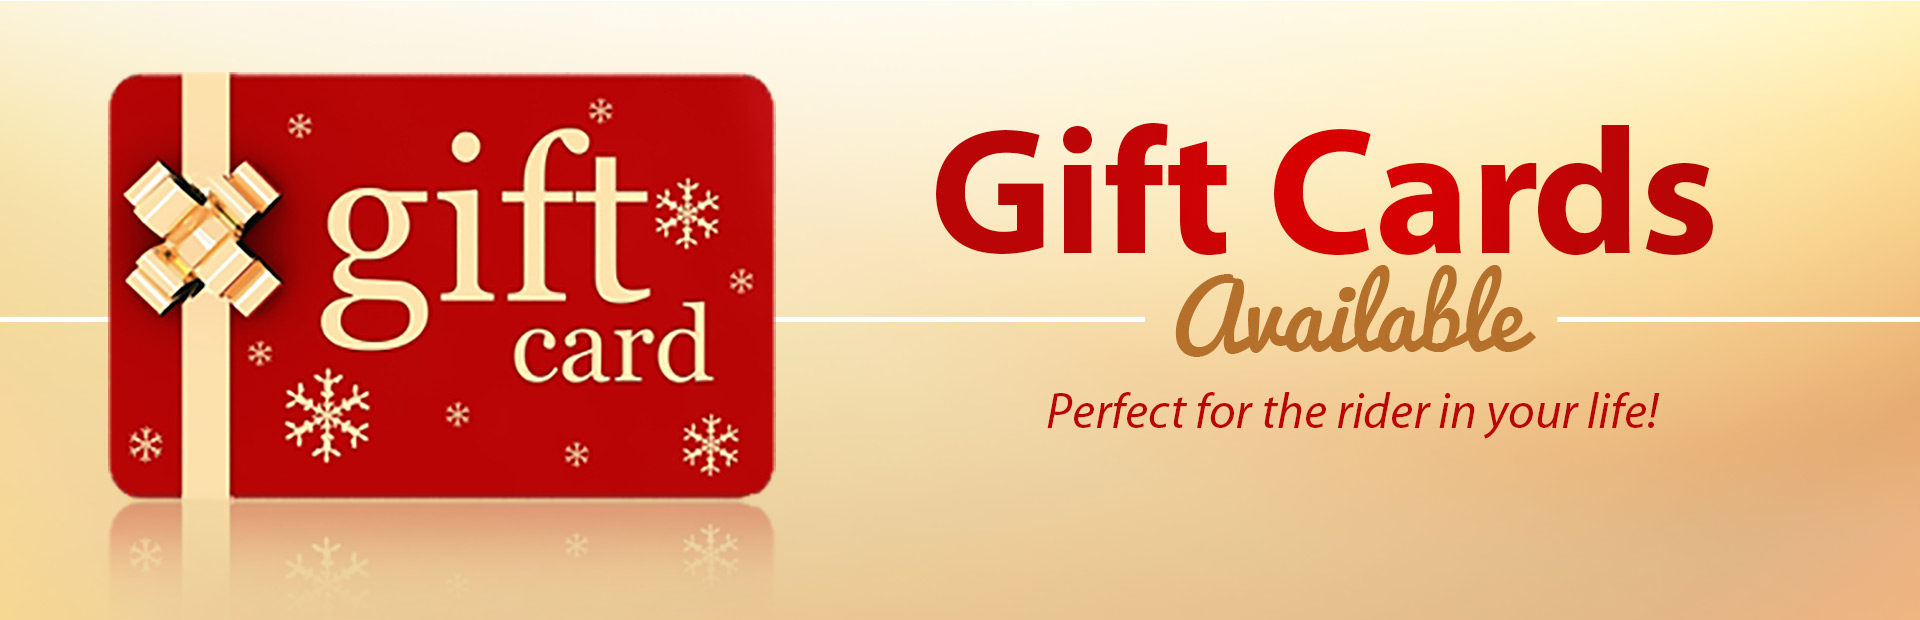 Gift cards are available! They are perfect for the rider in your life! Click here to contact us.